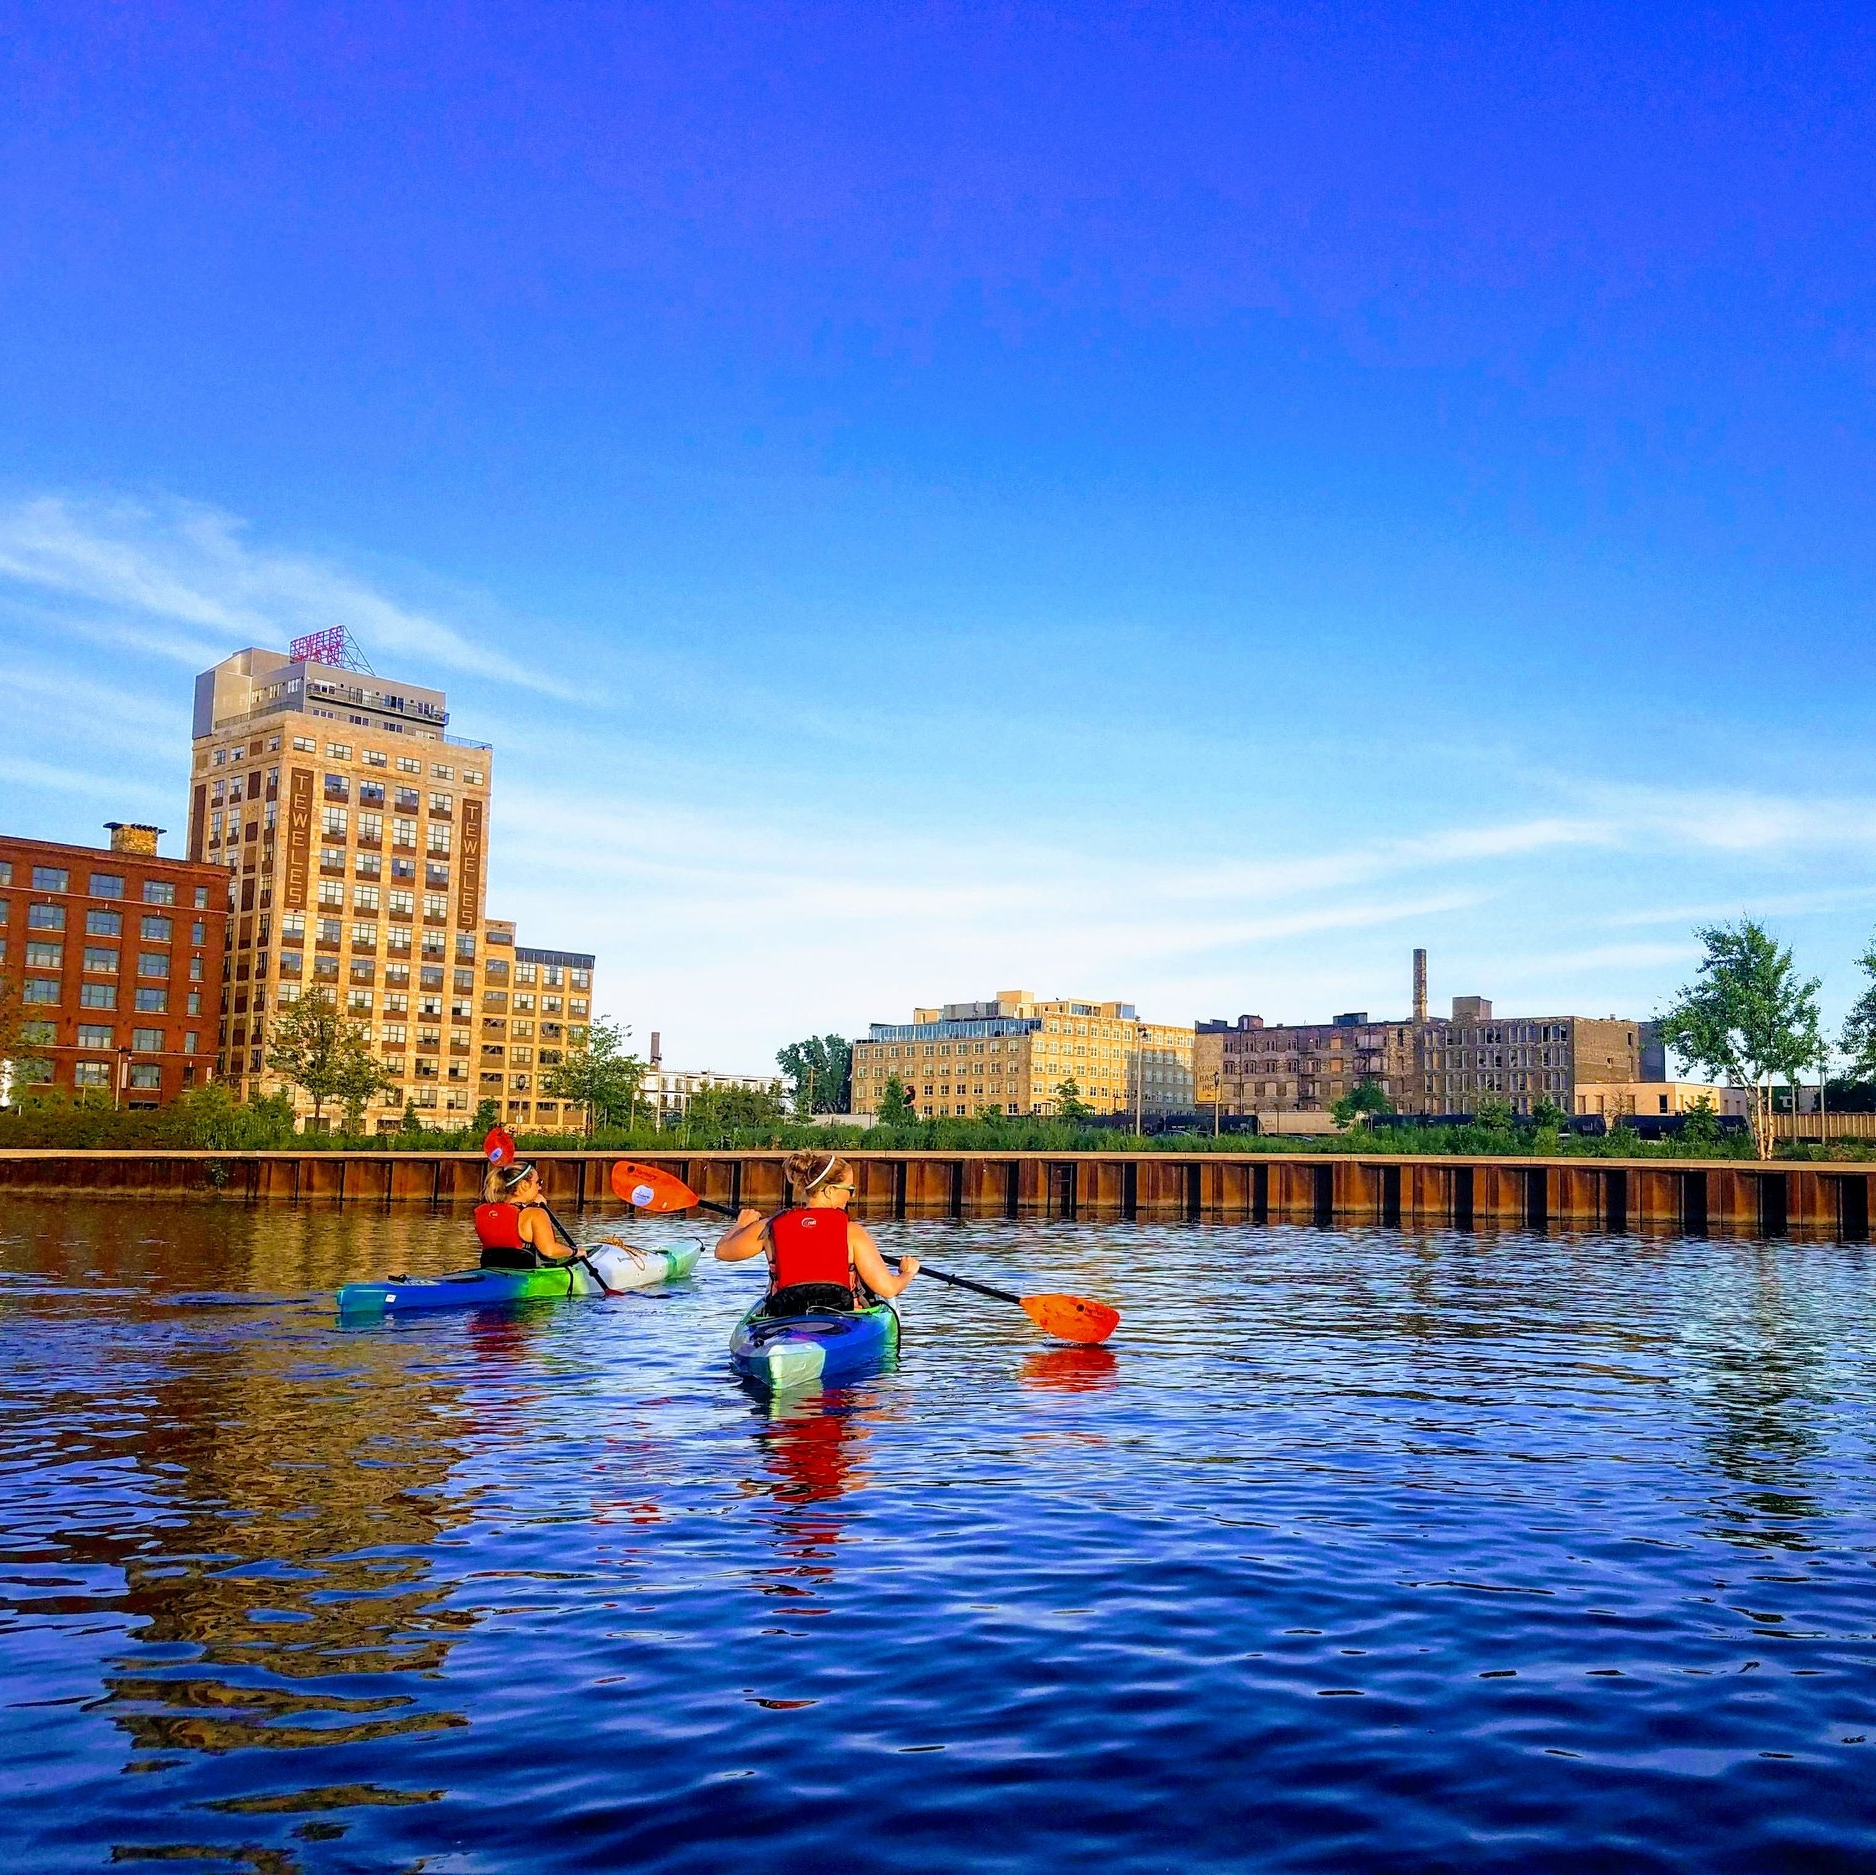 Kayak Tours - Menomonee Valley Partners & Milwaukee Kayak Company partner each summer to get you on the Menomonee River and its canals while exploring the Valley's past, vital to Milwaukee's history, and its exciting future. Great for all experience levels! Available tours are listed on our events page or on Milwaukee Kayak Company's events page.